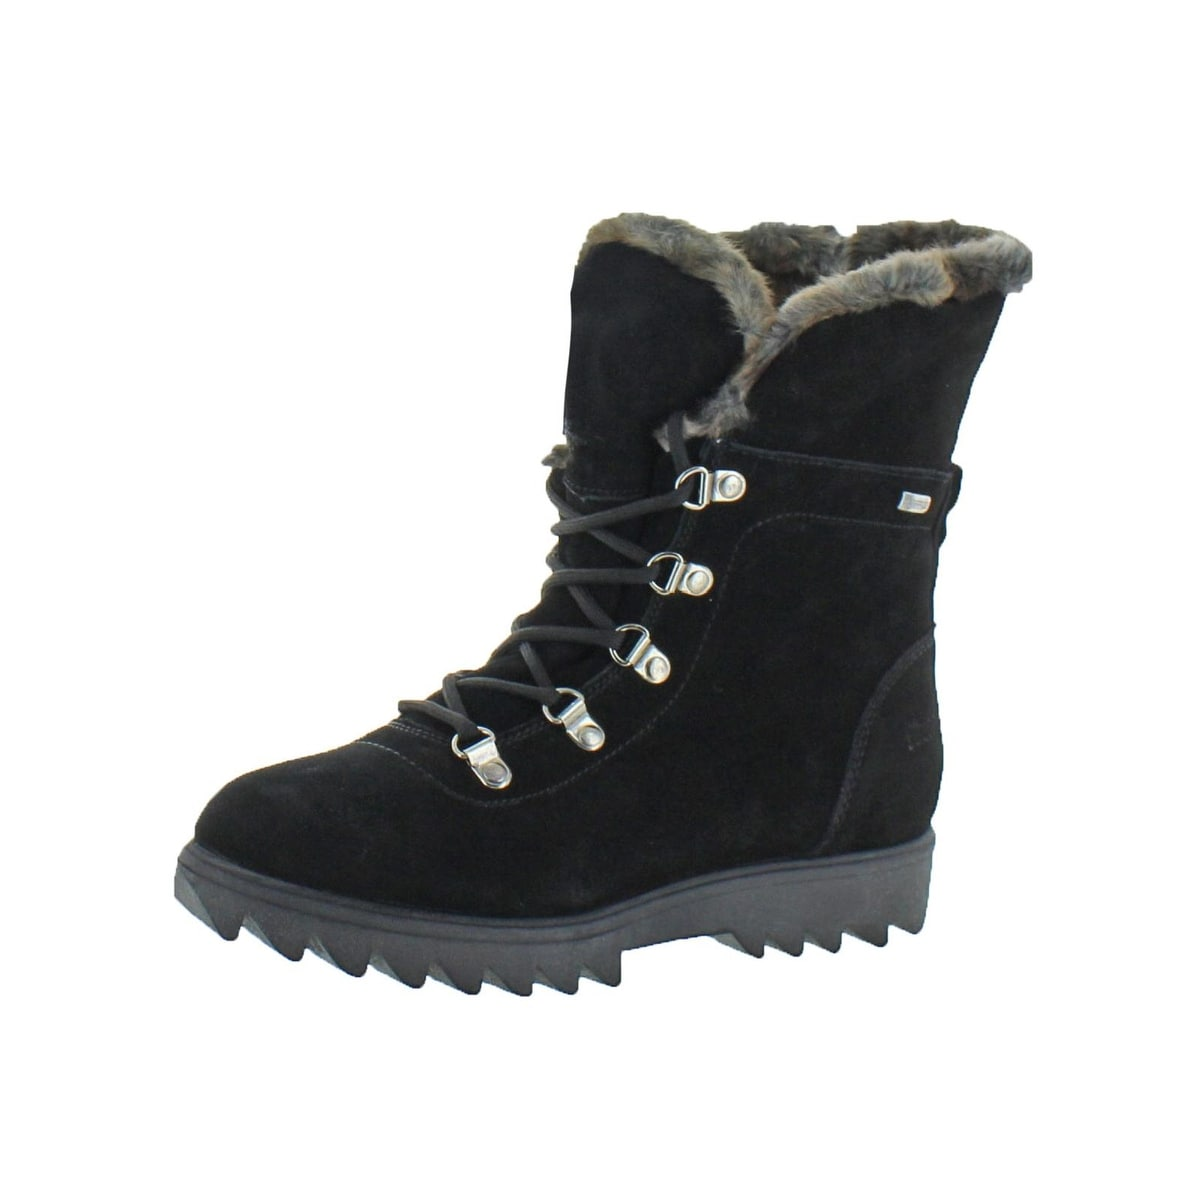 192a2ae301d23 Buy Cougar Women's Boots Online at Overstock | Our Best Women's Shoes Deals